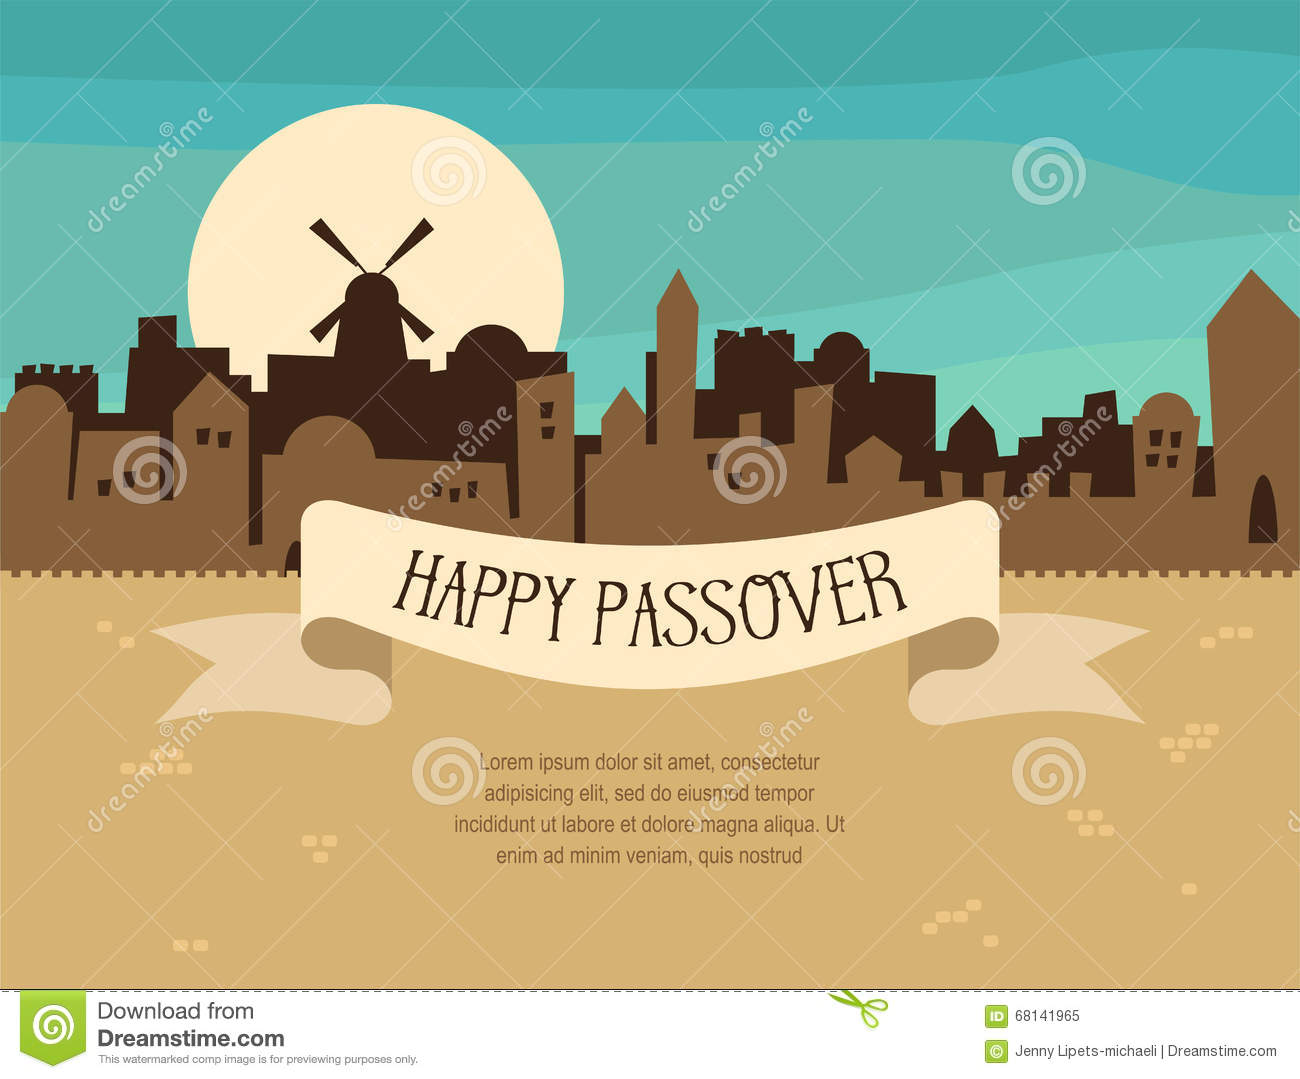 Happy passover greeting card design with jerusalem city skyline download comp m4hsunfo